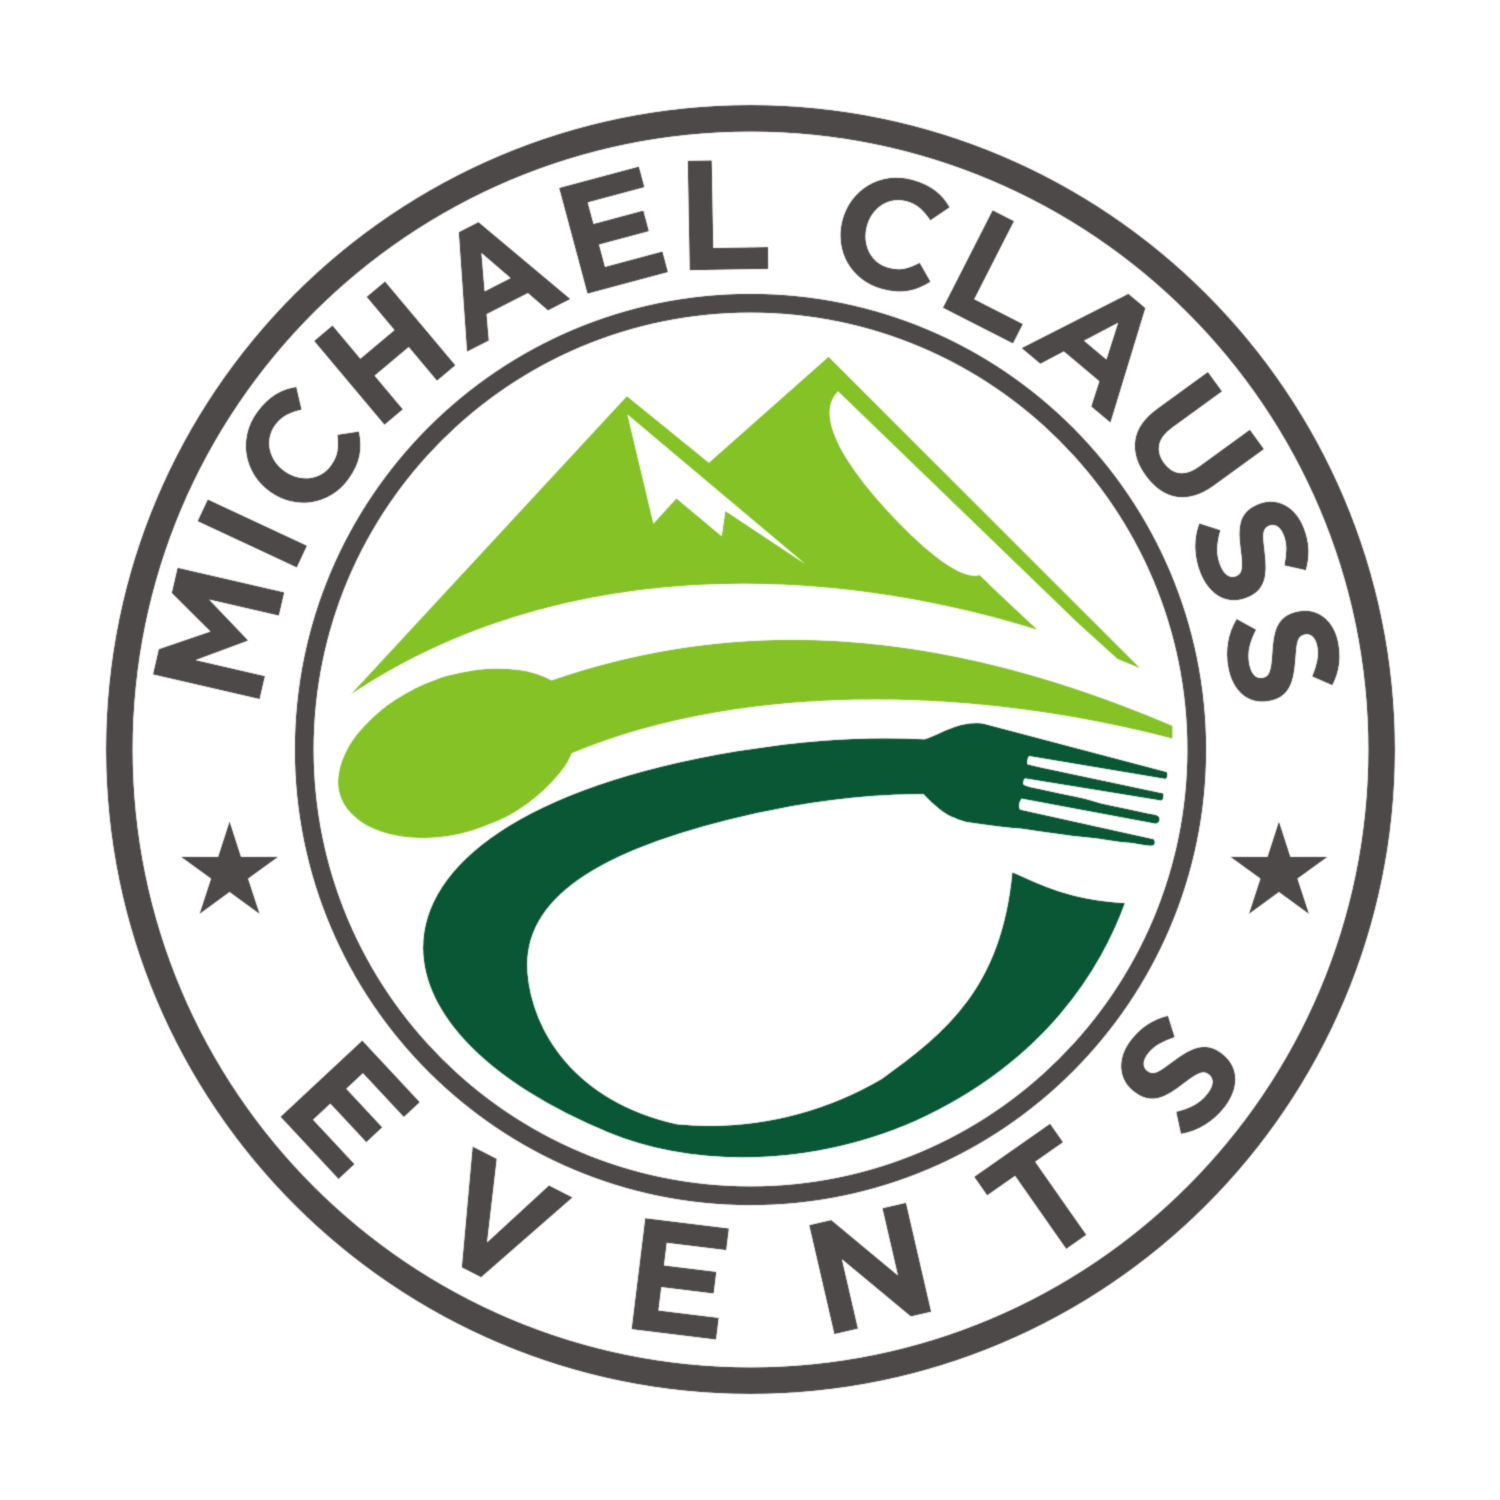 MICHAEL CLAUSS EVENTS